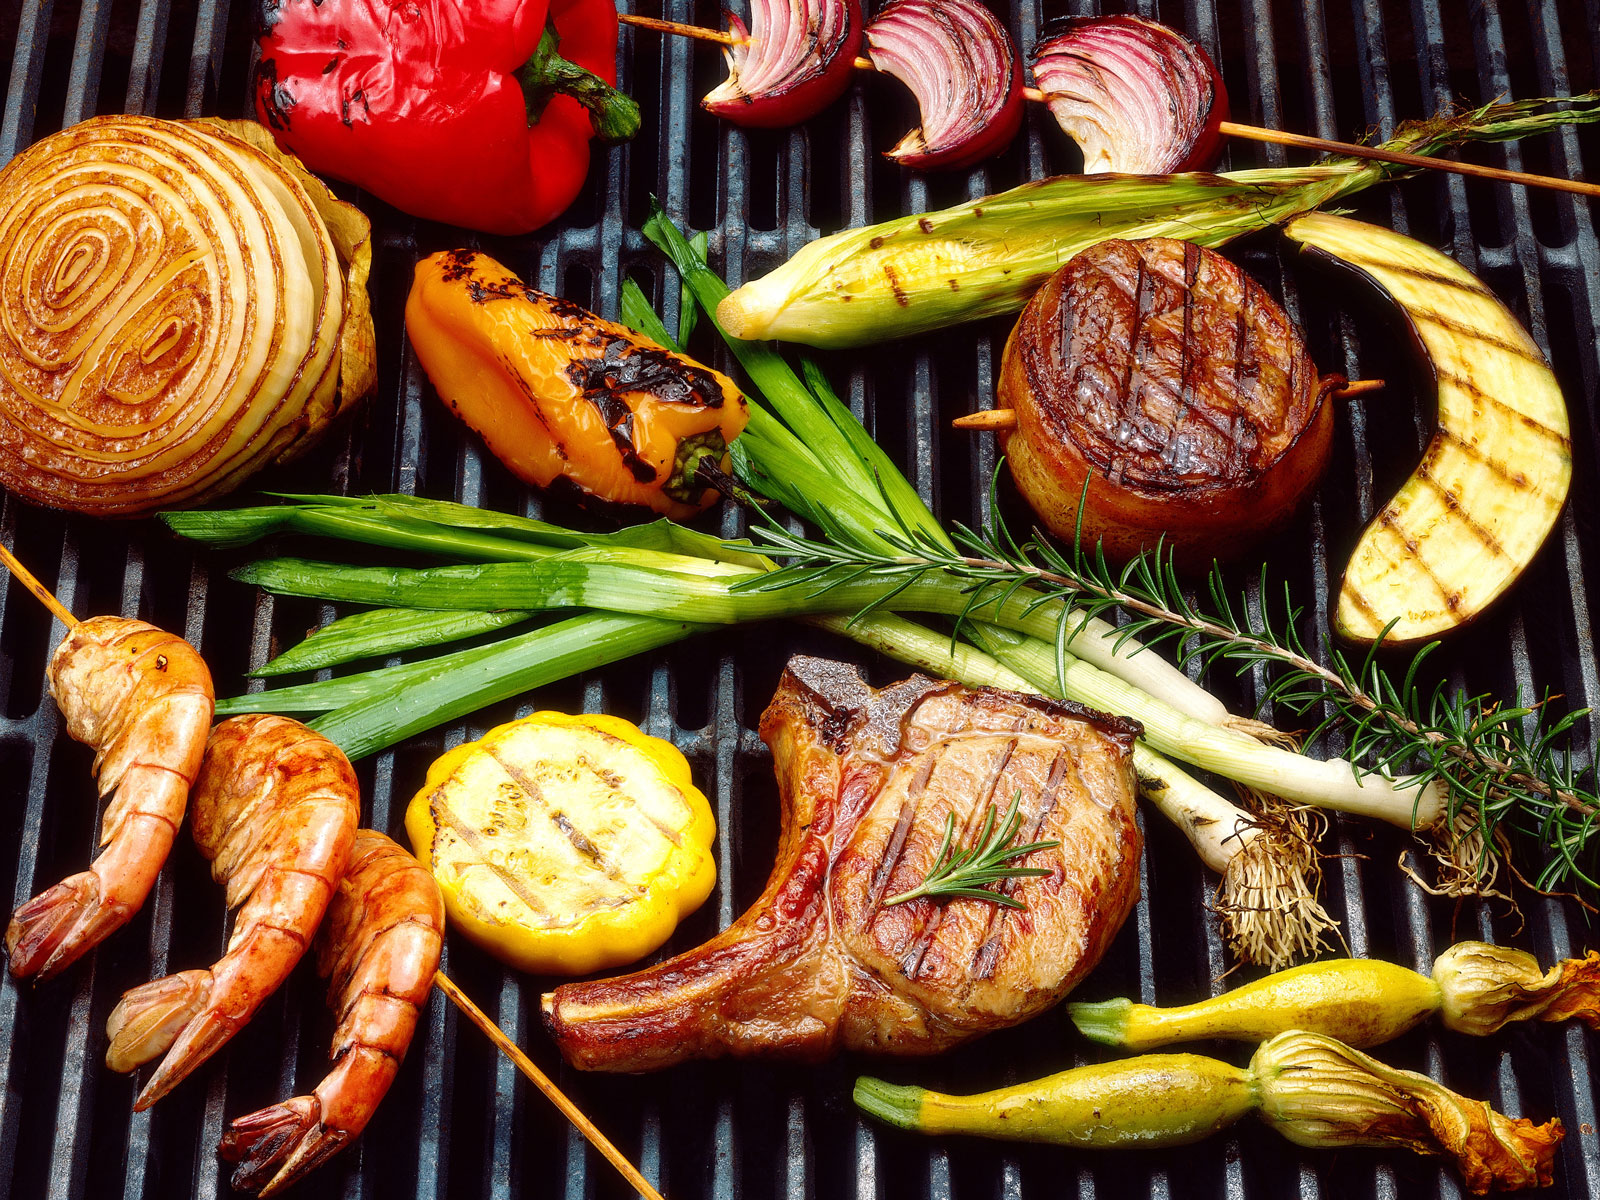 The 7 Mistakes You're Making When Grilling, According to a Pro